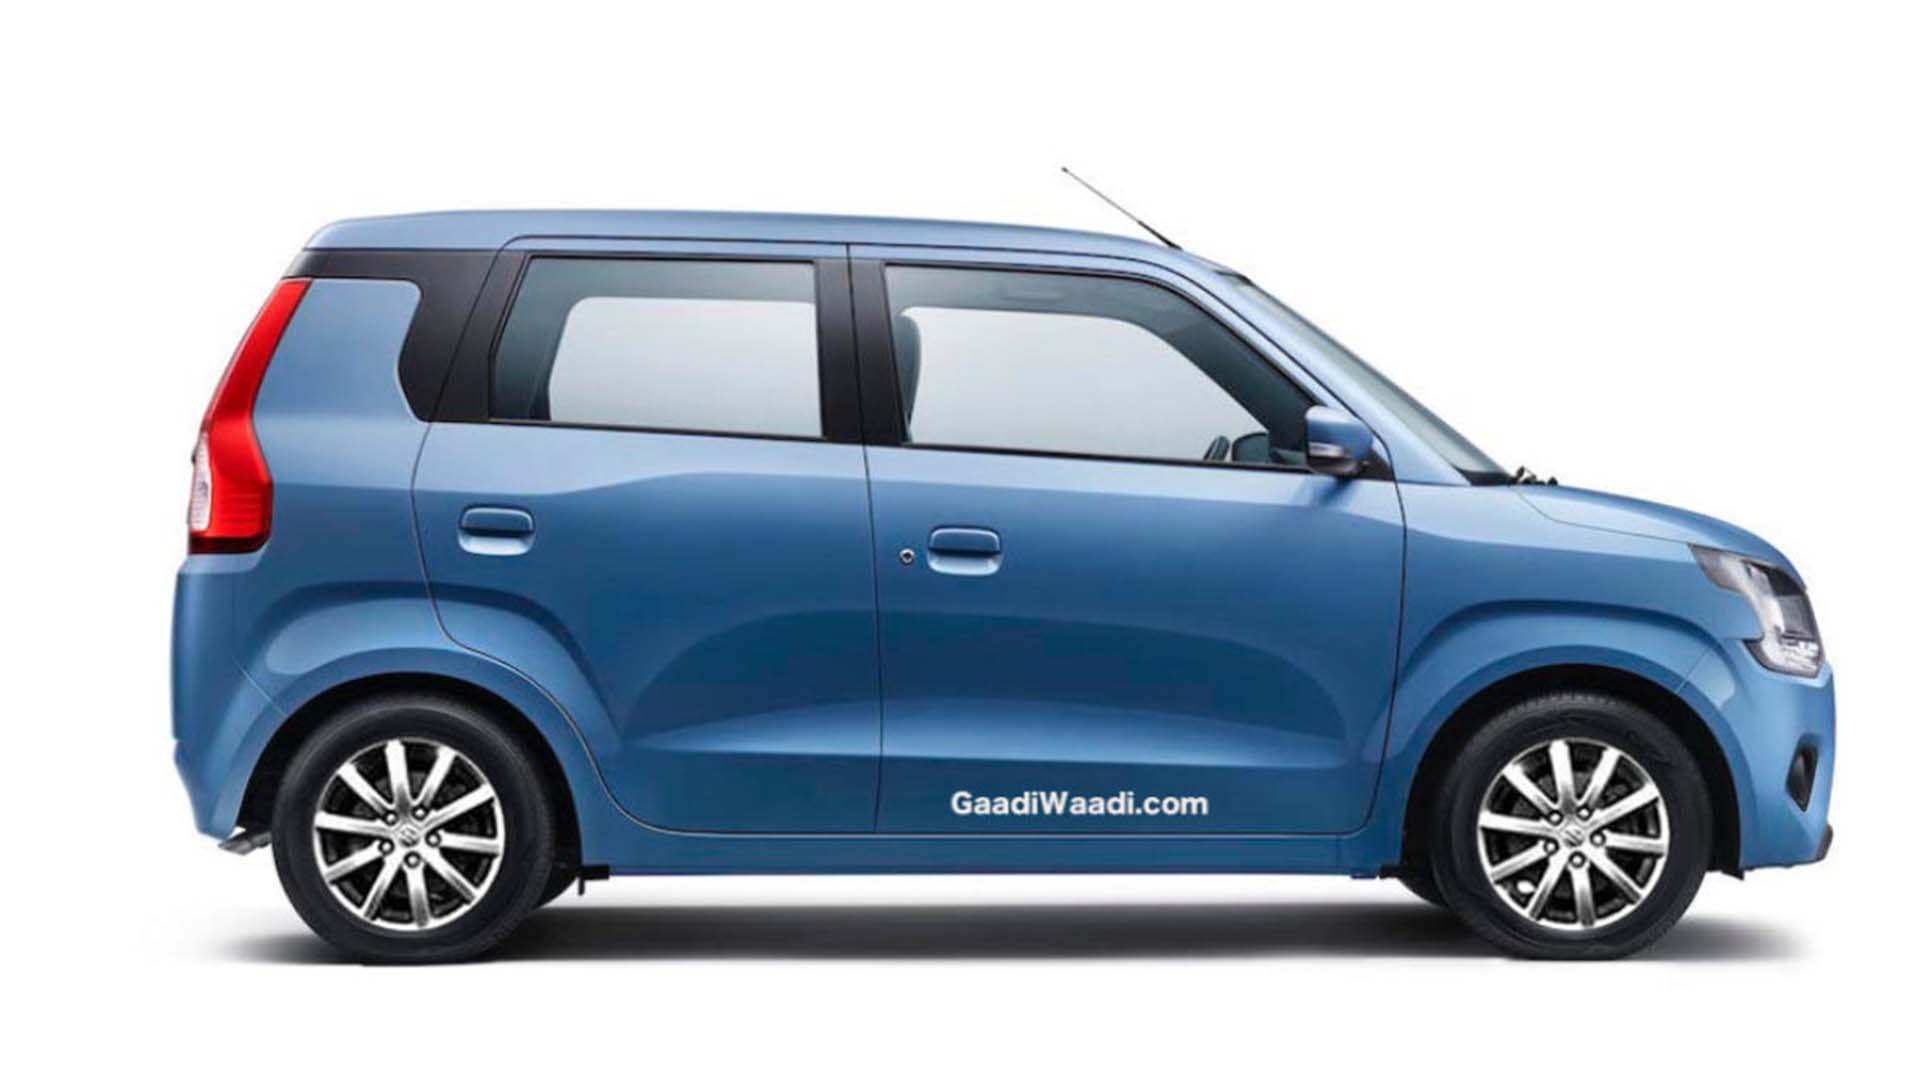 https://iciciauto.com/storage/upload/model_images/Maruti Wagon R - Side View.jpg